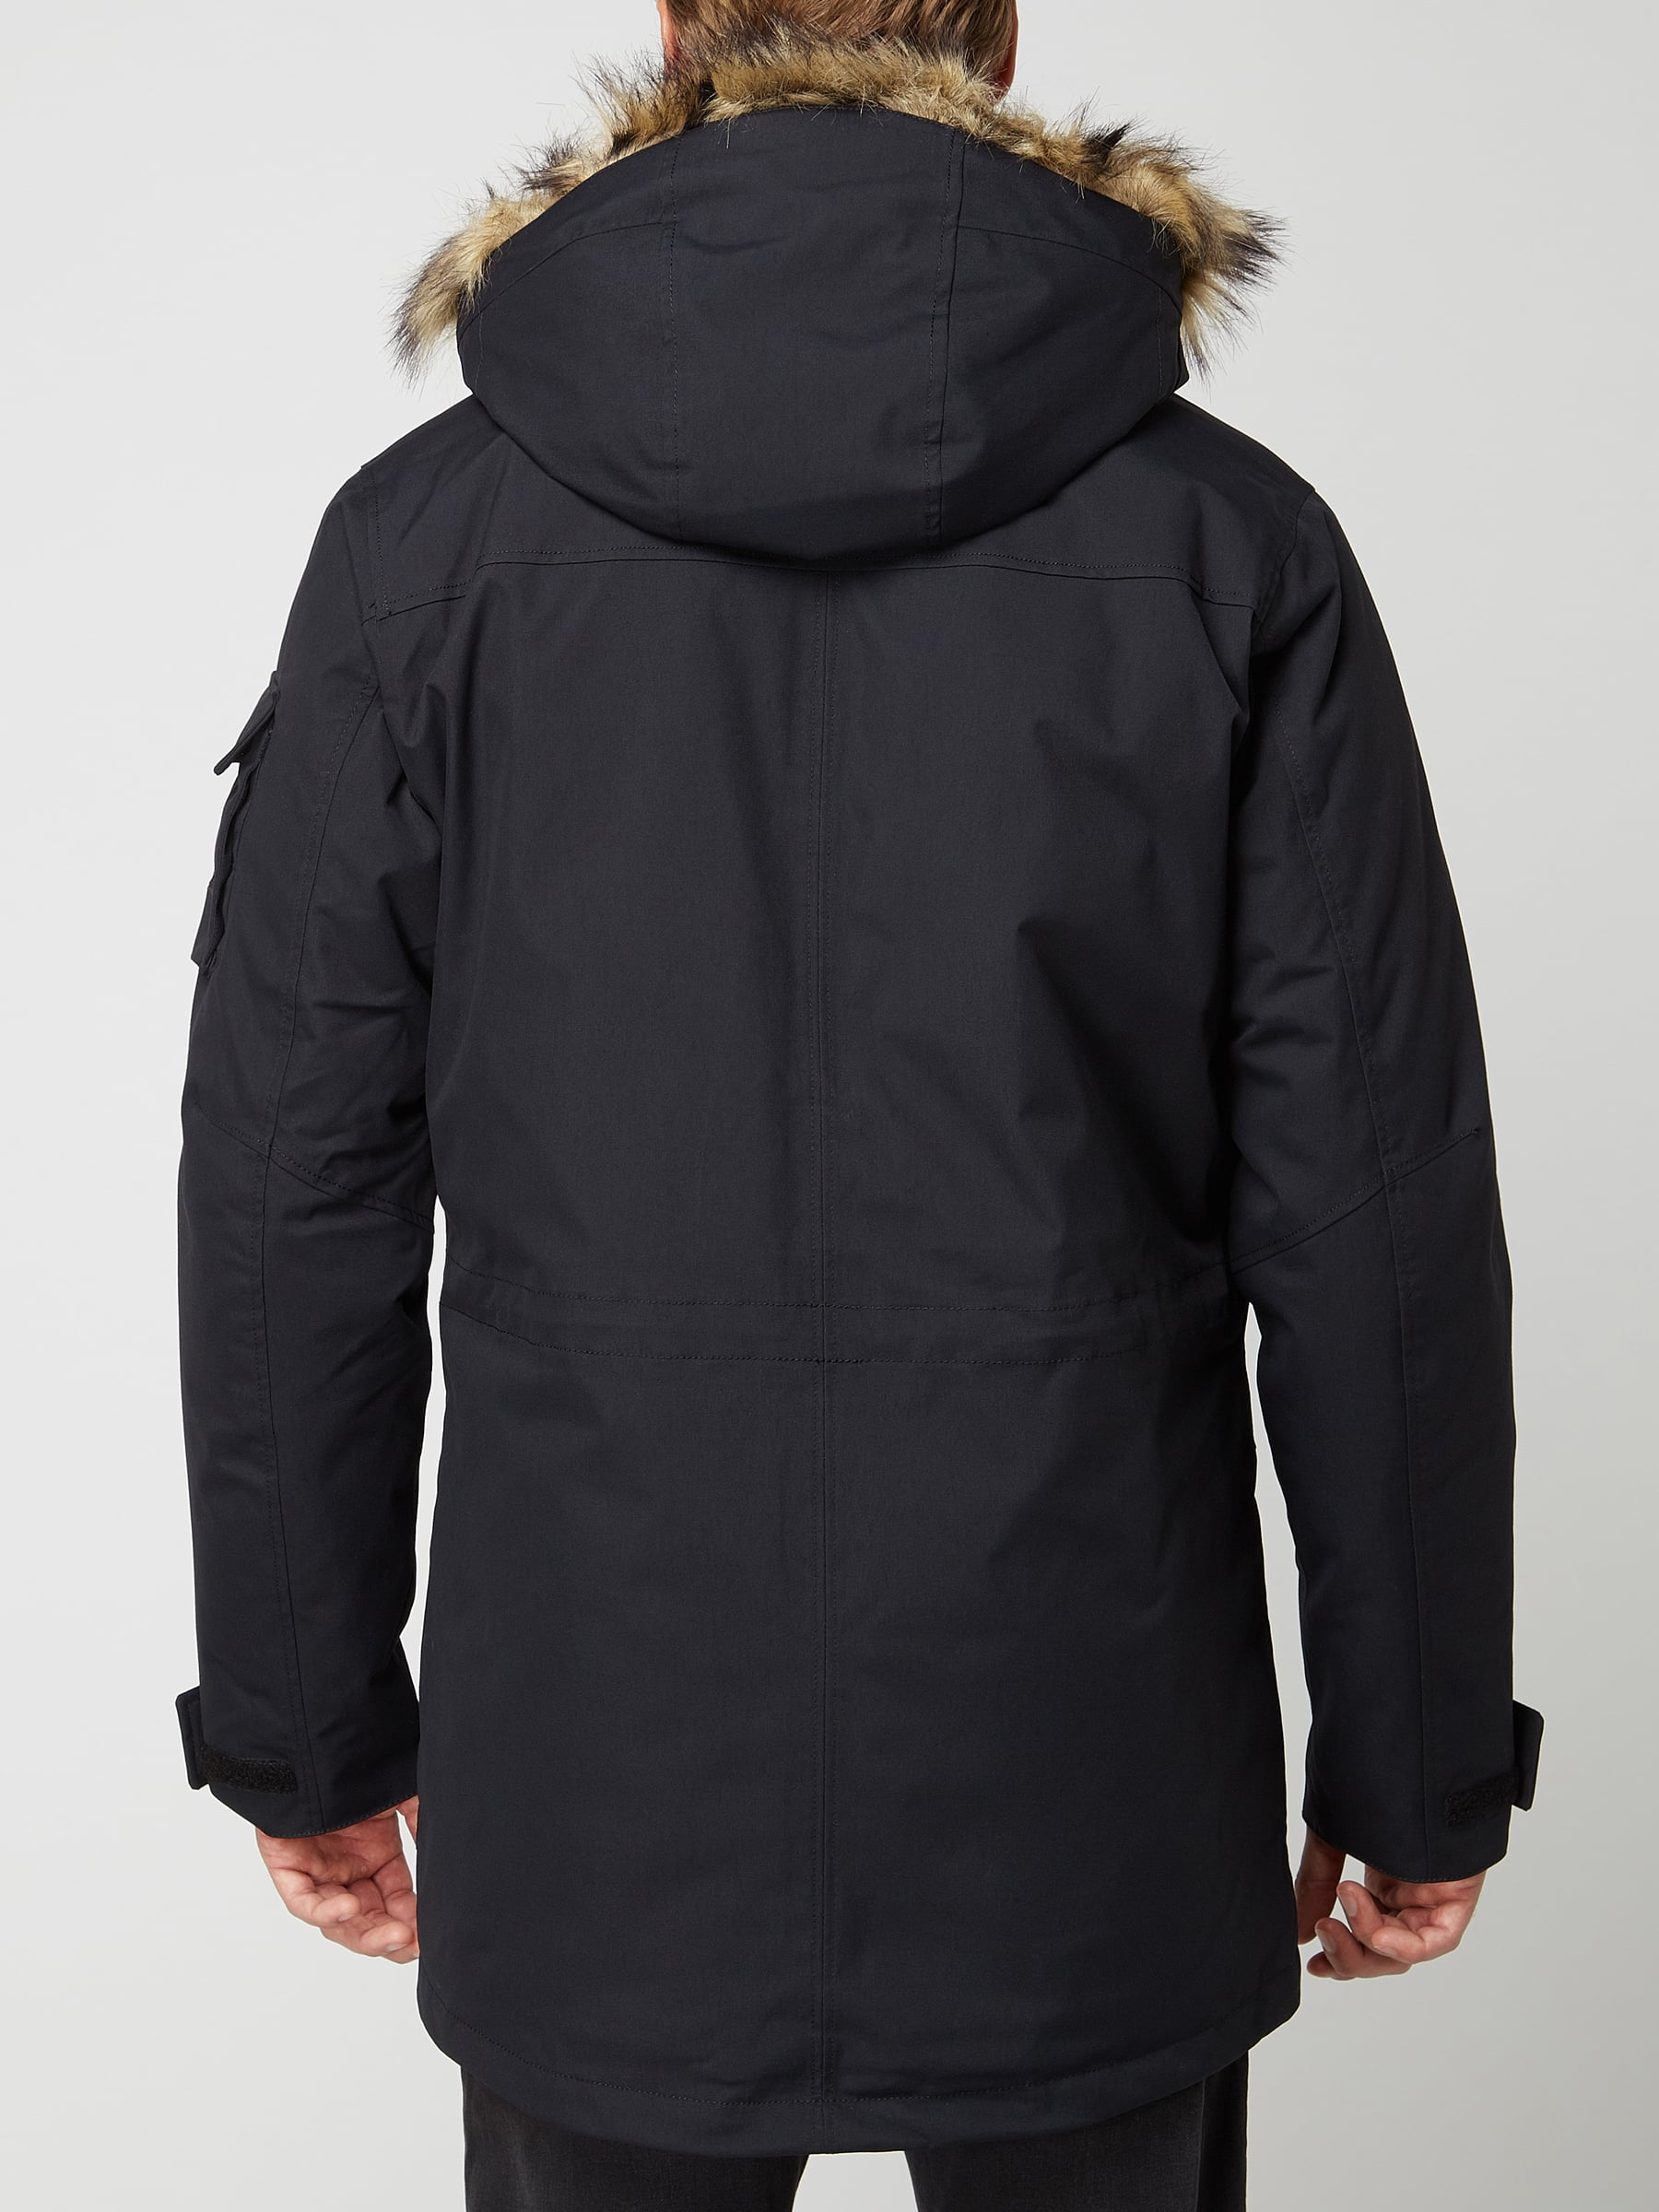 Jack Wolfskin Fair Wear Foundation Parka mit Wattierung wasserdicht Schwarz